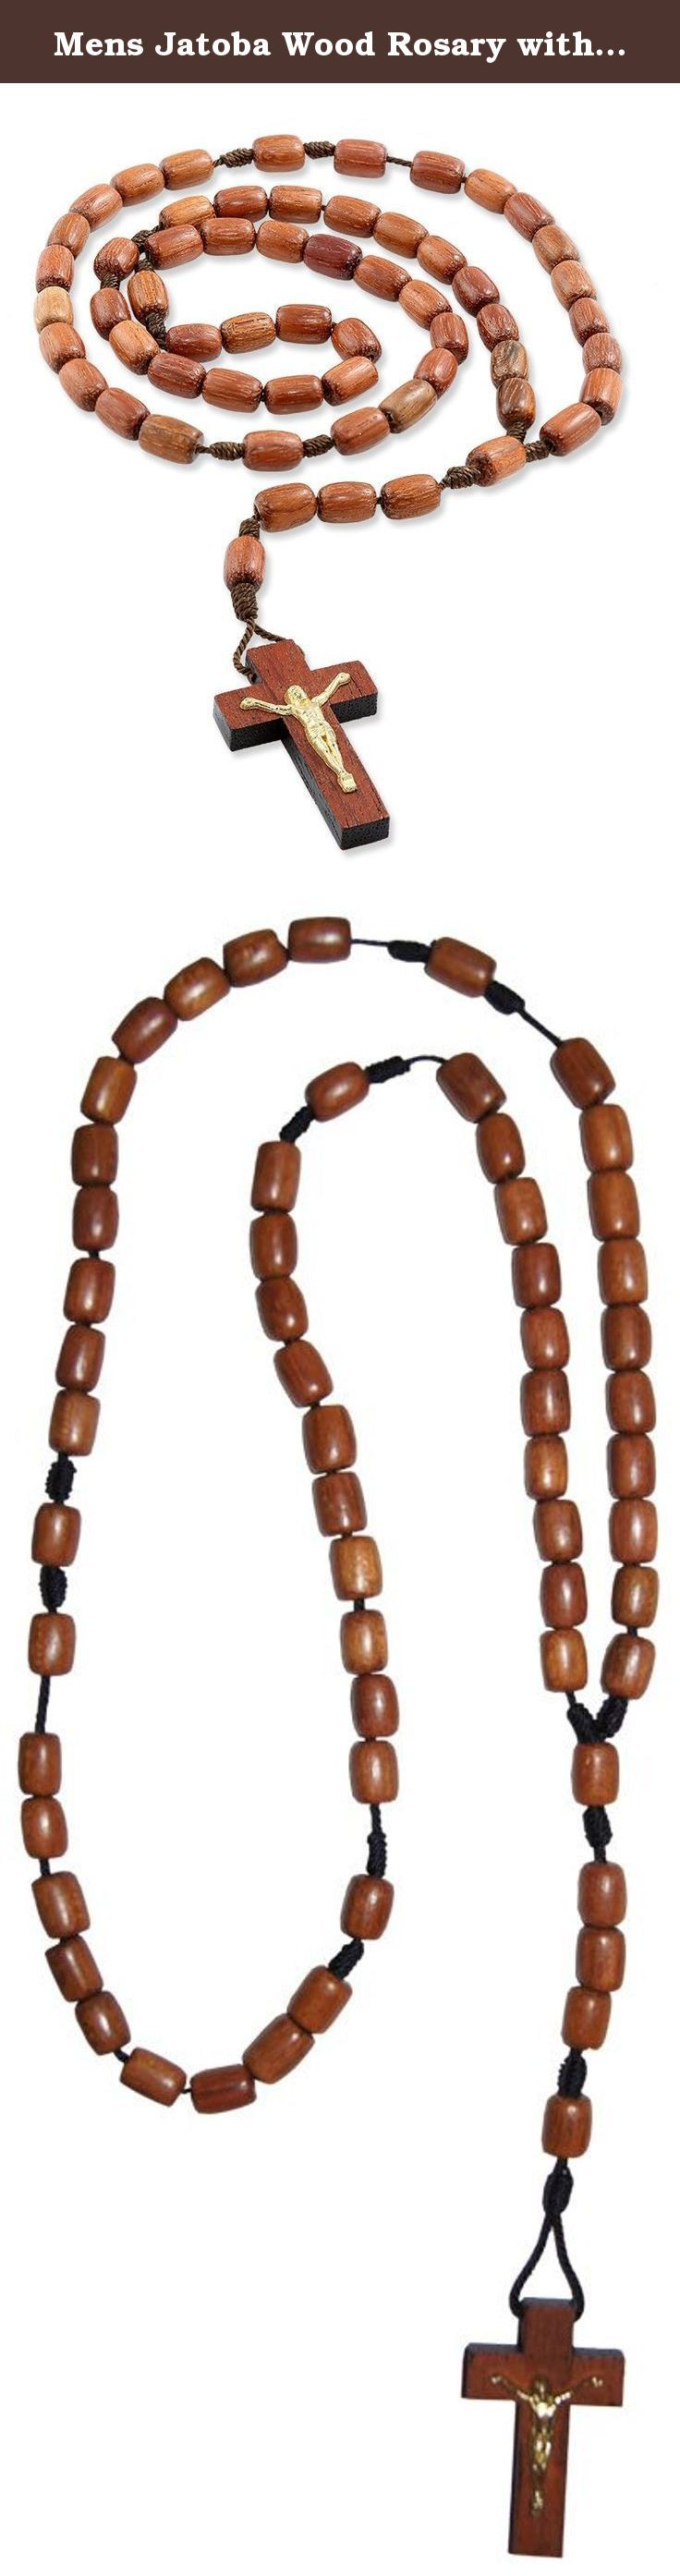 Mens Jatoba Wood Rosary with Brown Cord and Cross, Made in Brazil, 19 Inch. Men's Jatoba Wood Rosary with Brown Cord and Cross Features:- • Solid, genuine jatoba wood rosary in a black color • Ideal for men and can be worn around neck • 19 inches long rosary and in fashion • This rosary is in fashion among all • Perfect gift for any occasion: baptism, first communion, confirmation, wedding • Great gift for men of all ages • Made in Brazil.